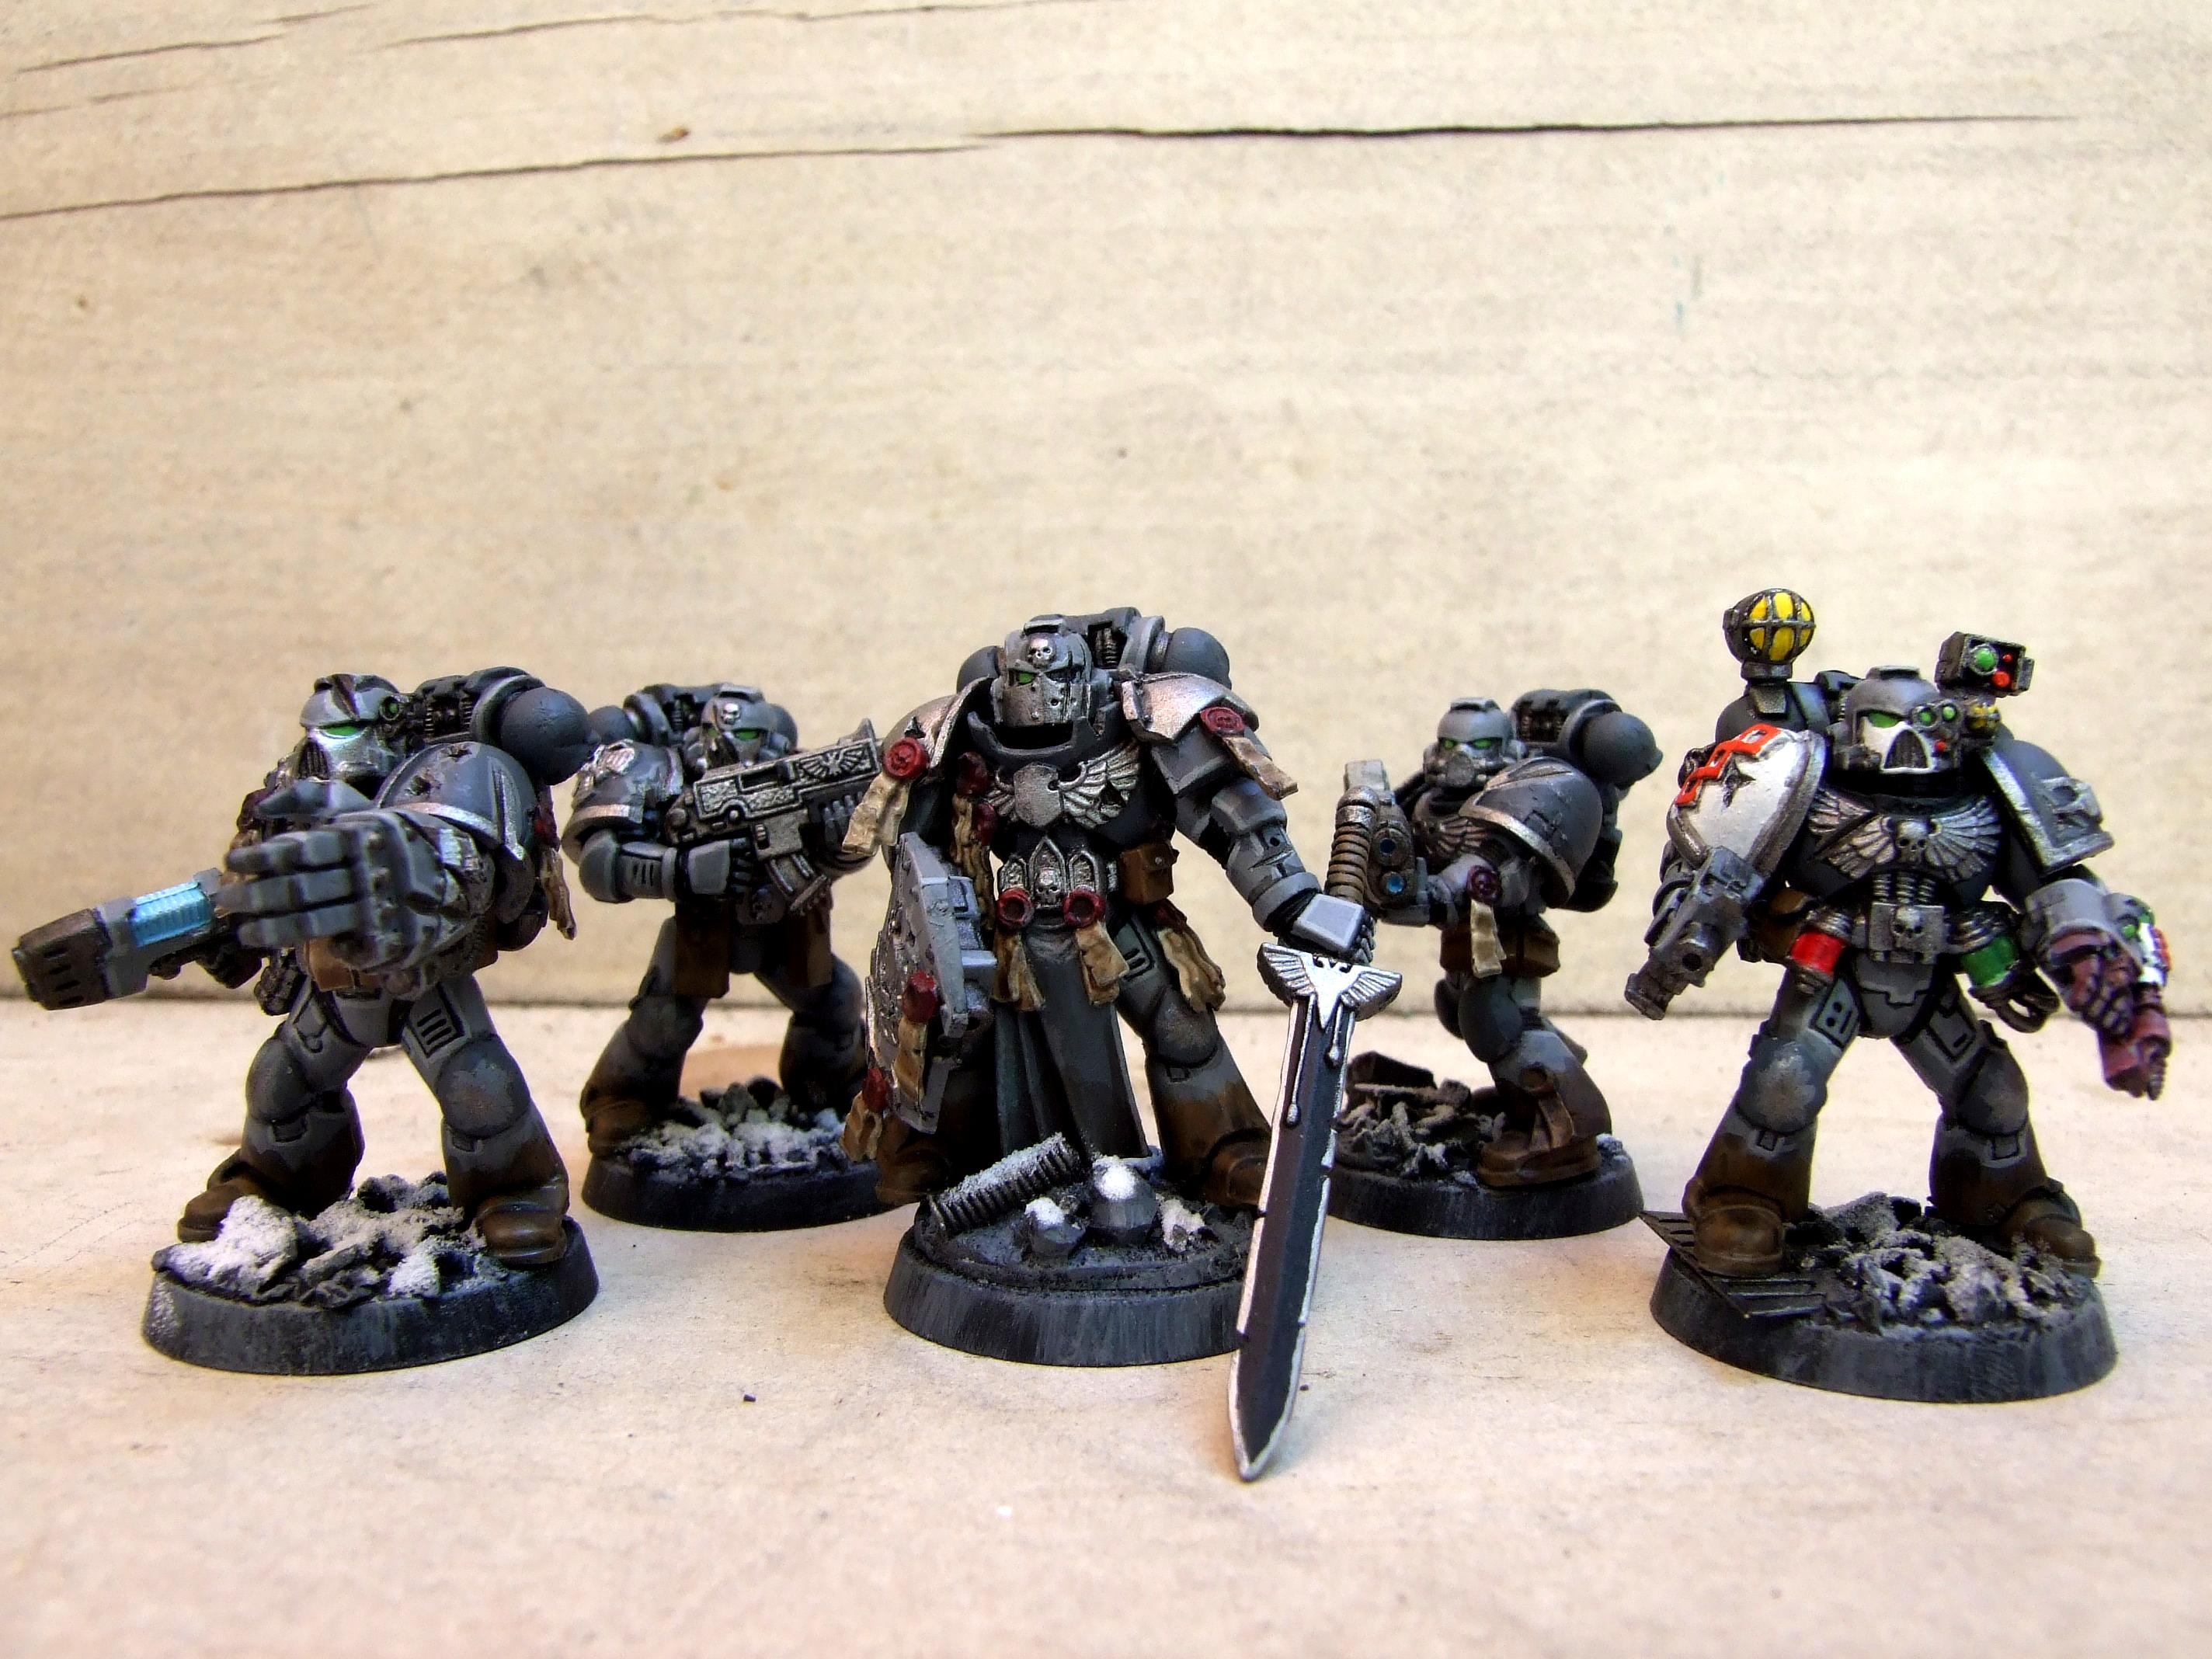 Command Squad, Relic Blade, Space Marines, Stone Sentinels